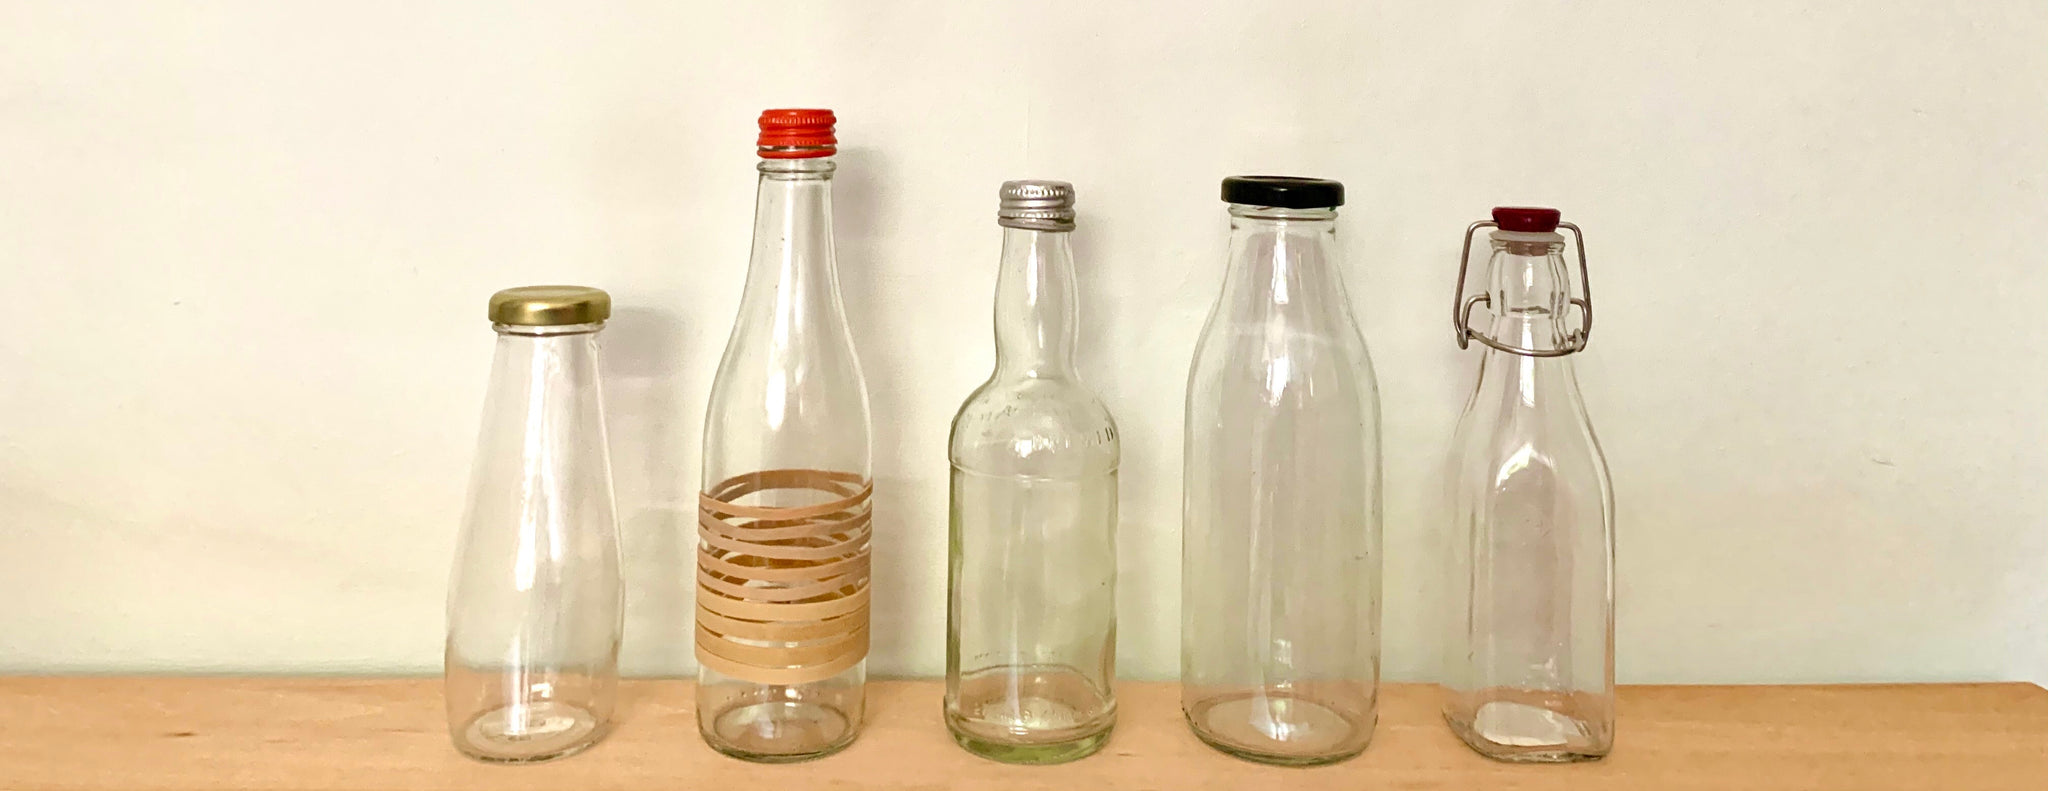 Reusable glass bottles